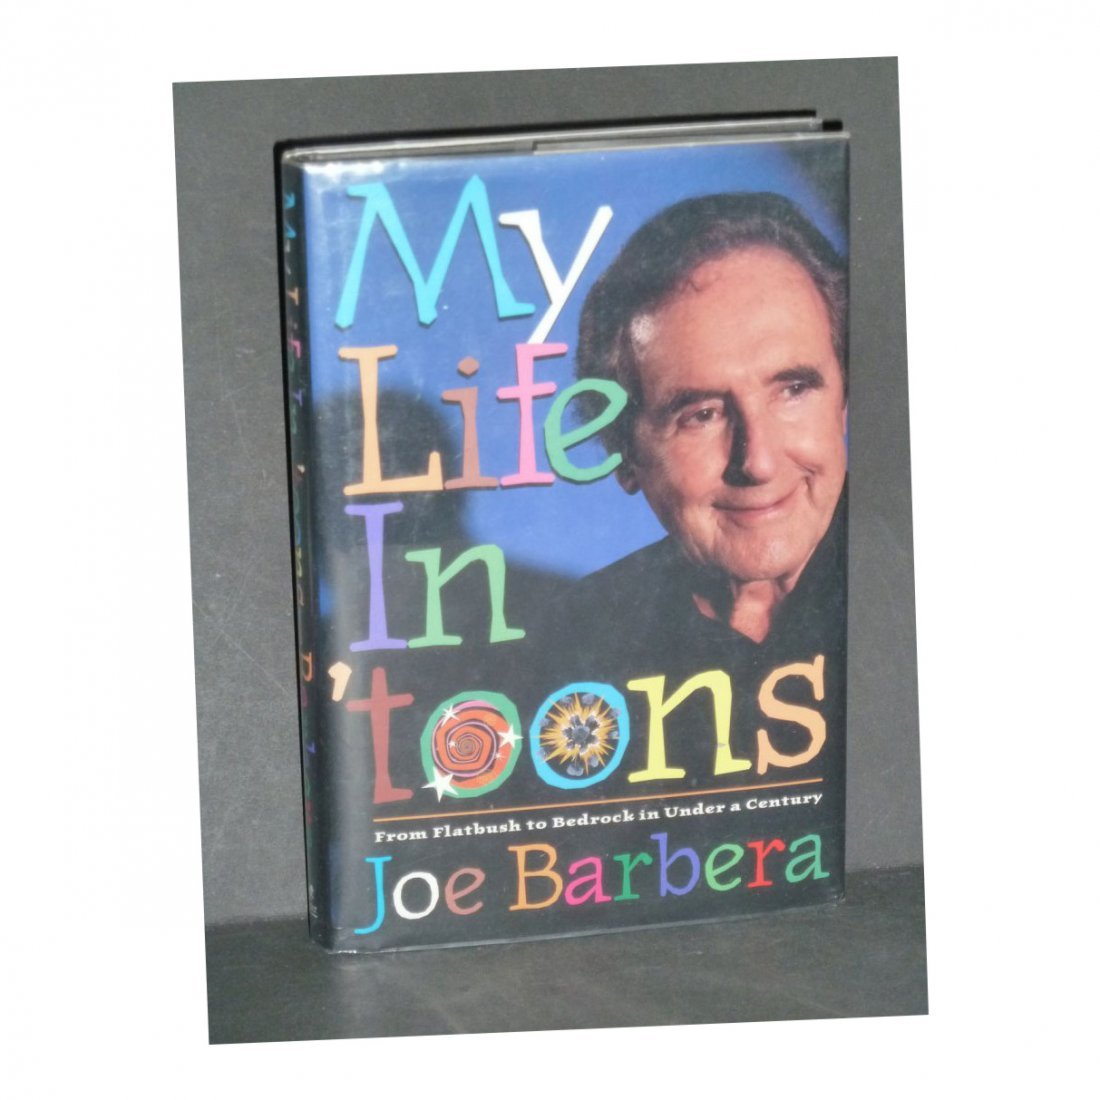 Joseph Barbera: My Life in 'Toons - Signed